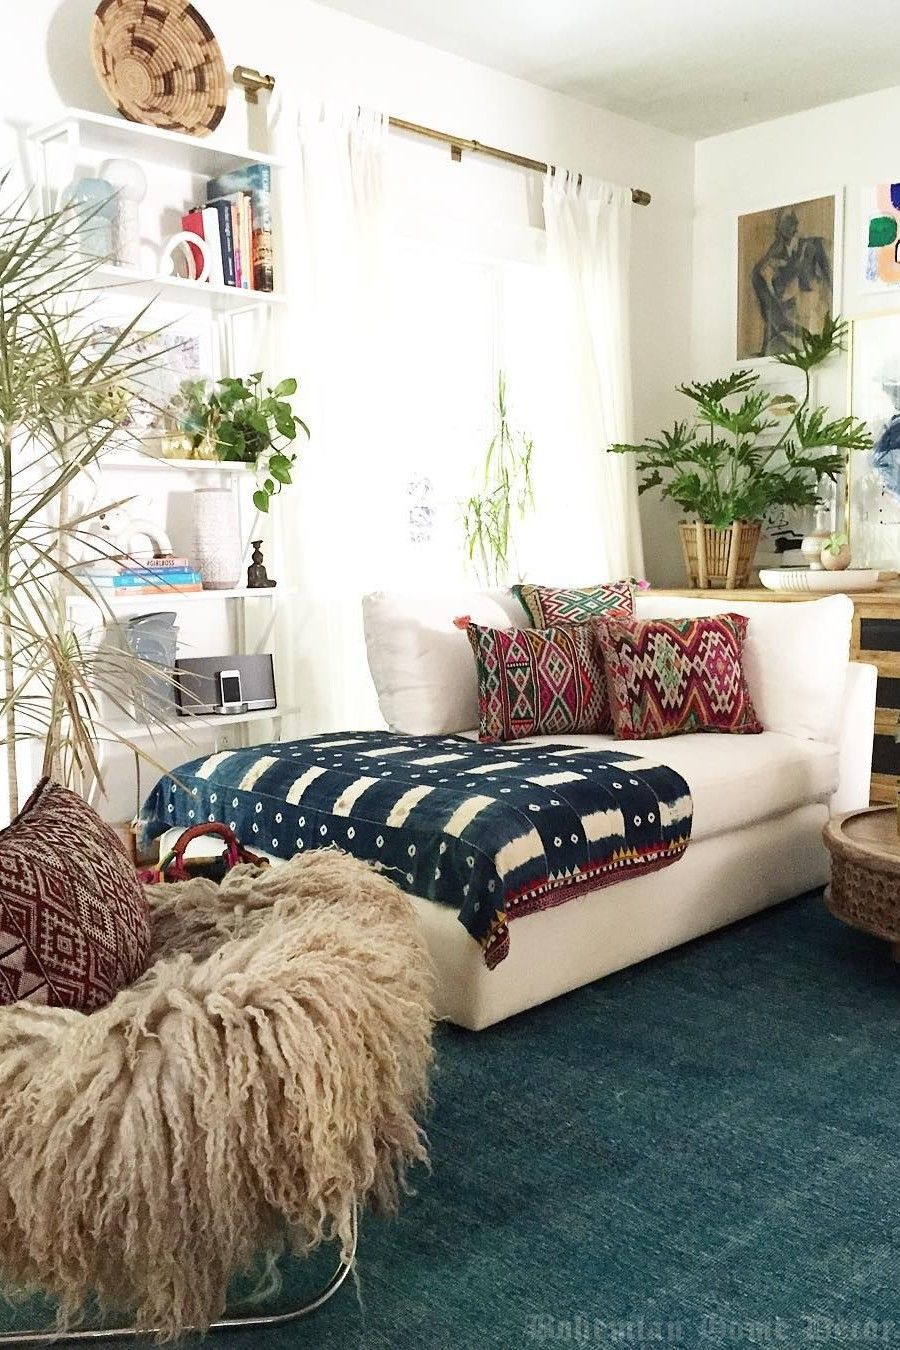 Find A Quick Way To Bohemian Home Decor